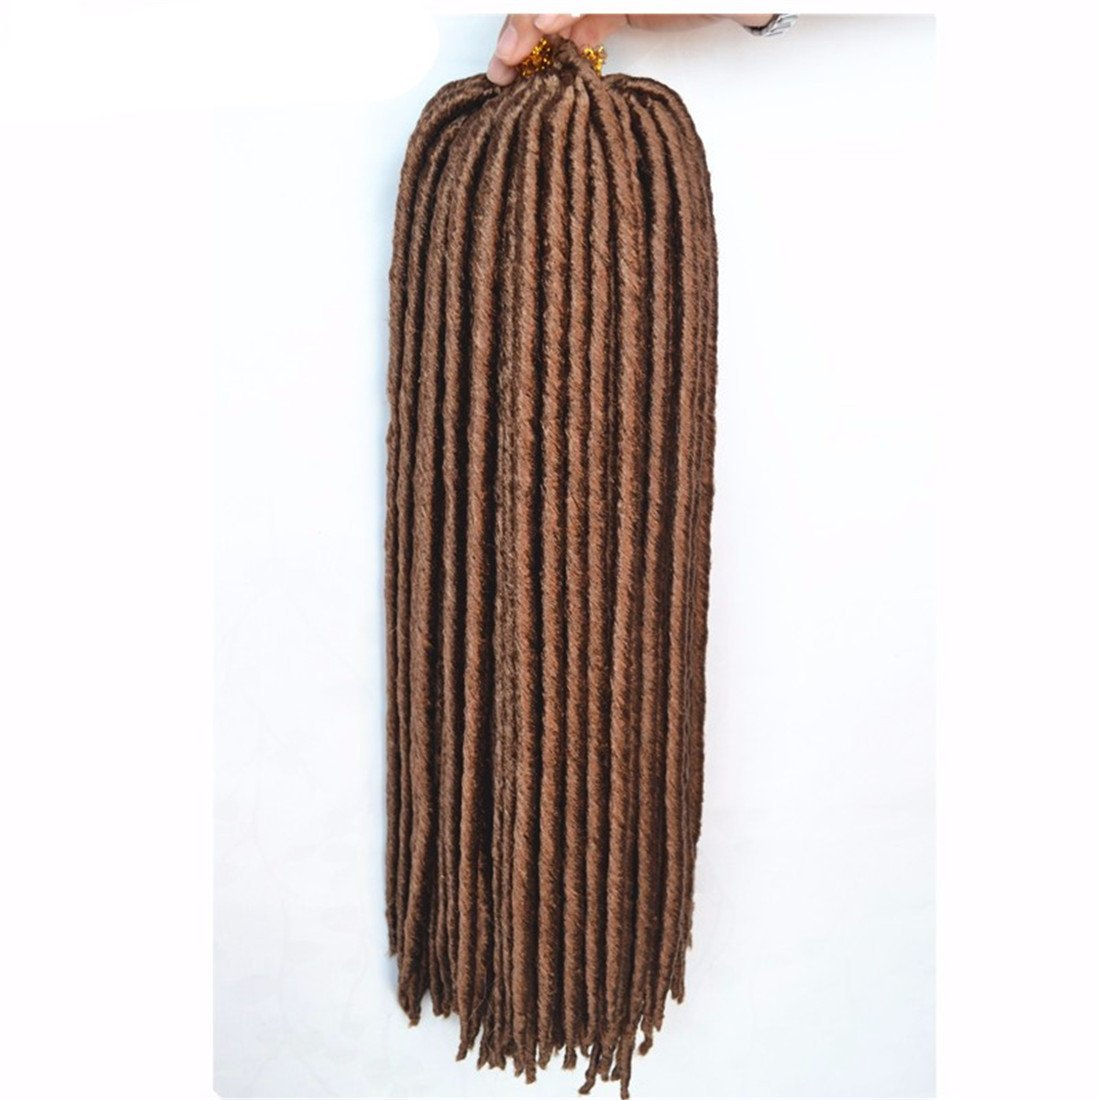 "Synthetic Hair Crochet Braids 2X Havana Mambo Faux Locs 18"" (5 PACK, 27--HONEY BLONDE)"